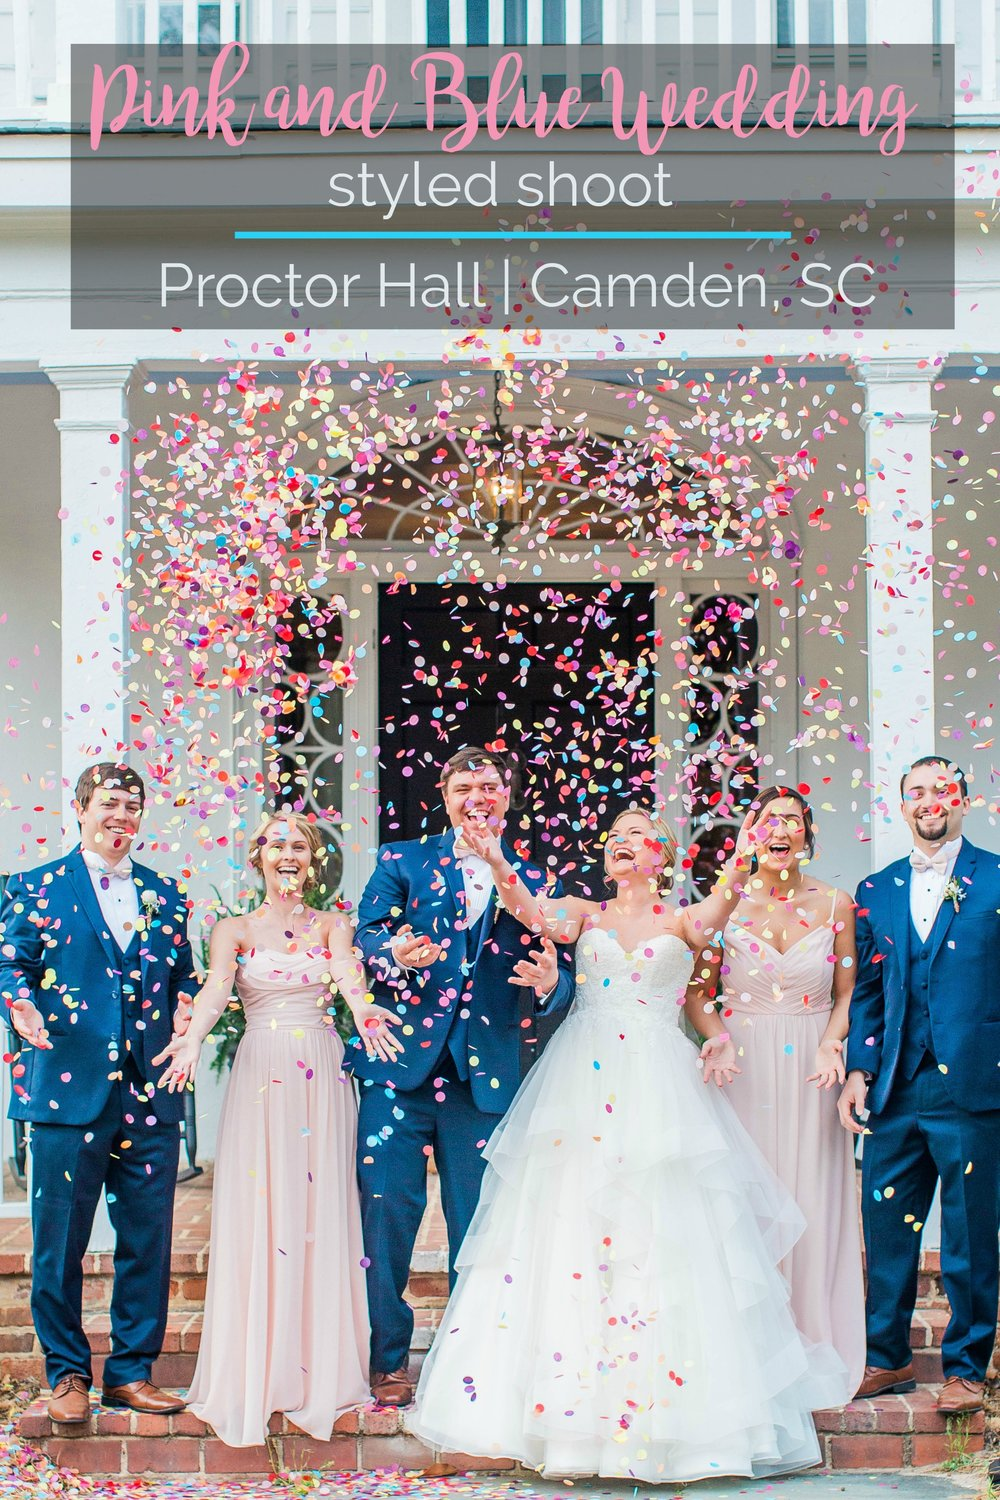 Wedding Inspiration: Pink and Blue Wedding Styled Shoot at Proctor Hall, Camden, South Carolina | Palmetto State Weddings | Photography by Heather Proctor Photography